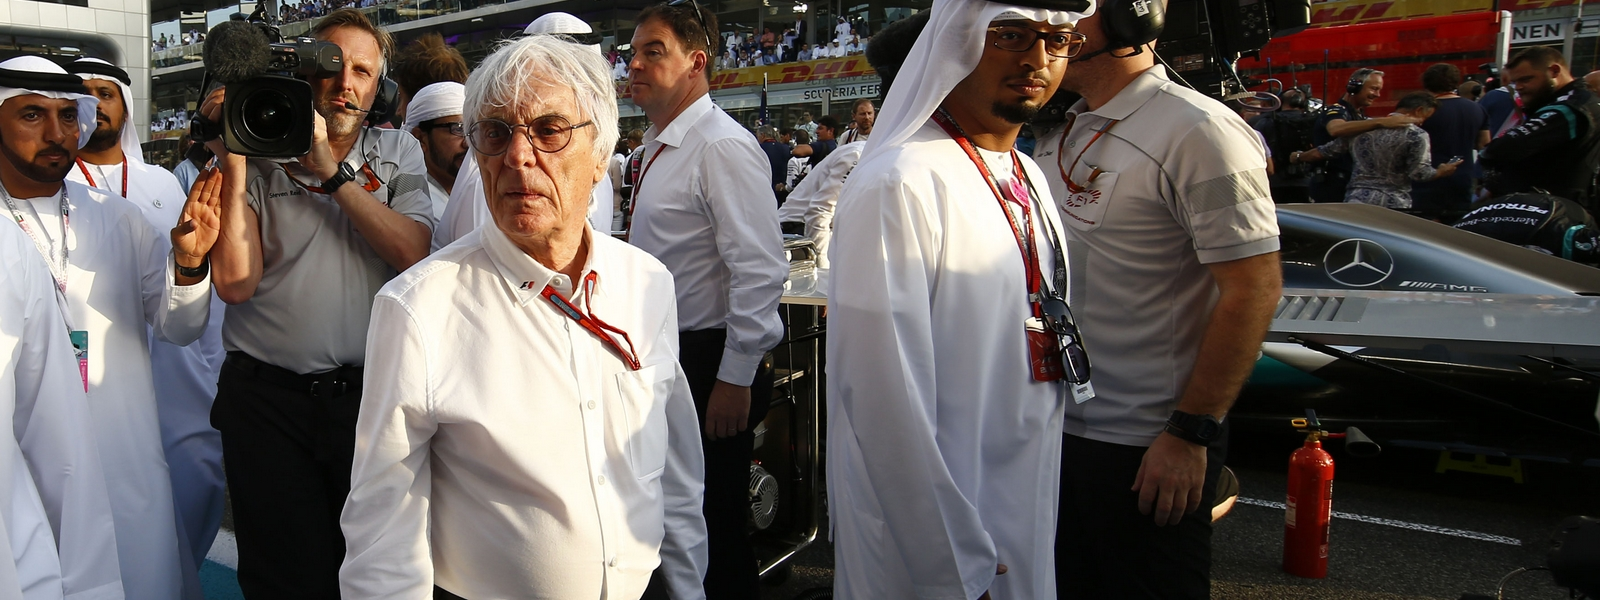 Motorsports: FIA Formula One World Championship 2016, Grand Prix of Abu Dhabi,  Bernie Ecclestone *** Local Caption *** +++ www.hoch-zwei.net +++ copyright: HOCH ZWEI +++